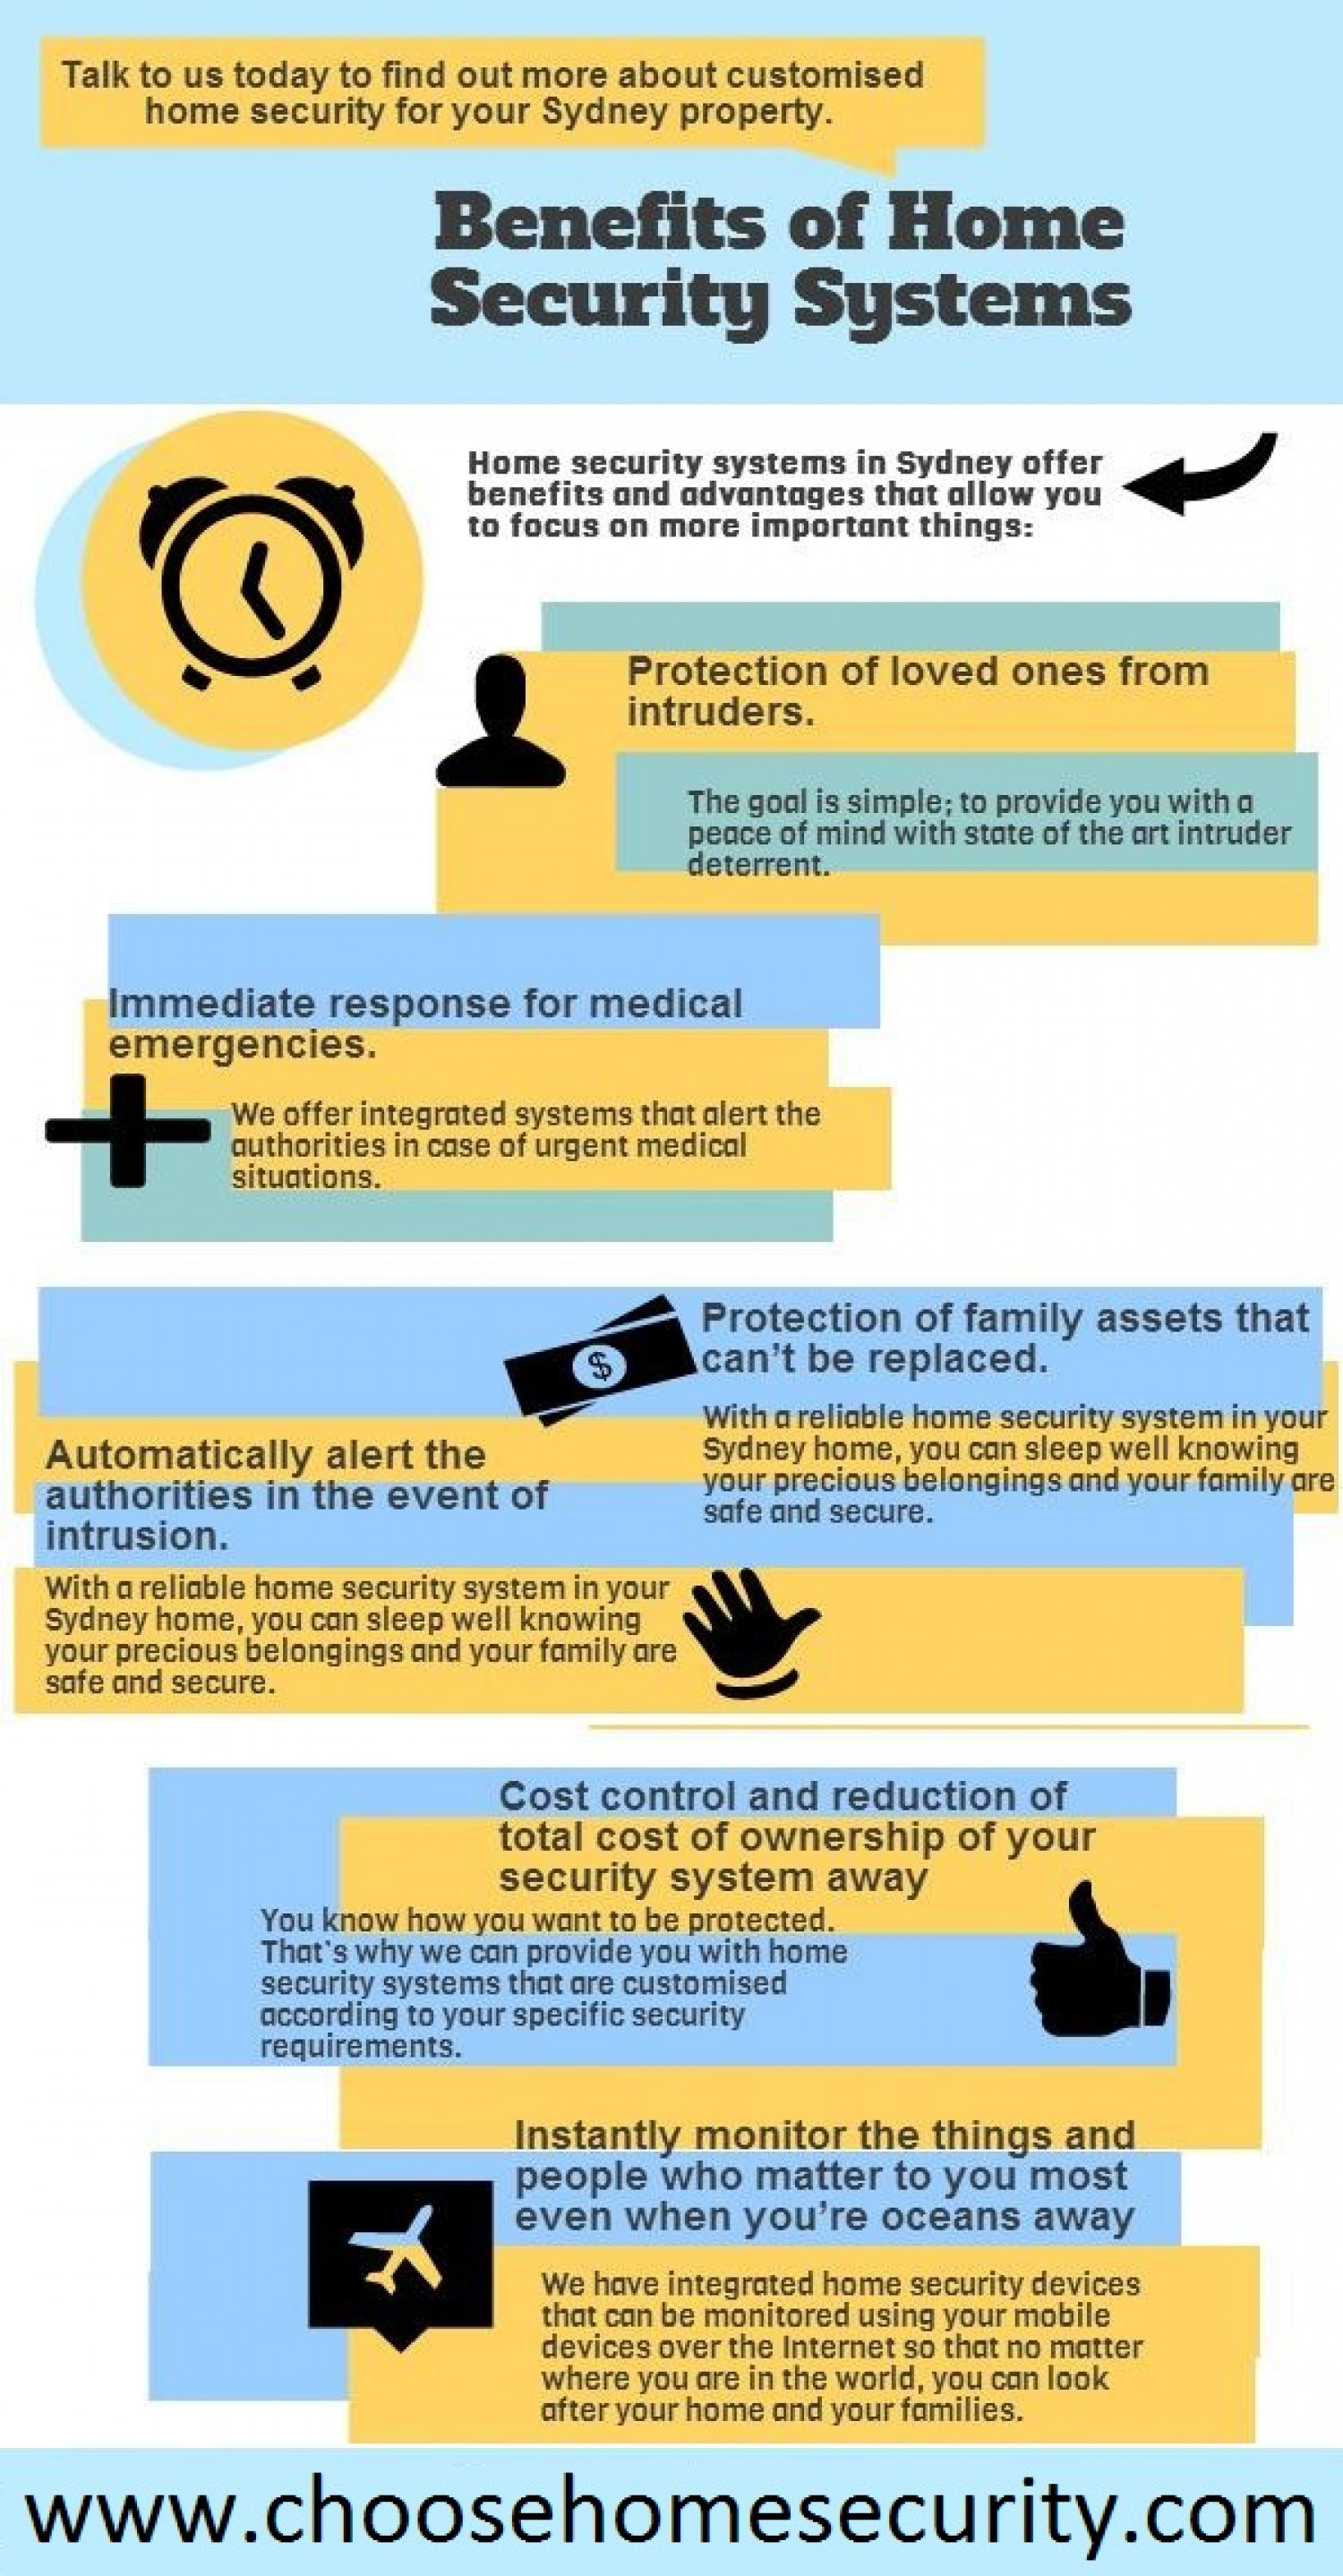 Benefits of Home Security Systems Infographic